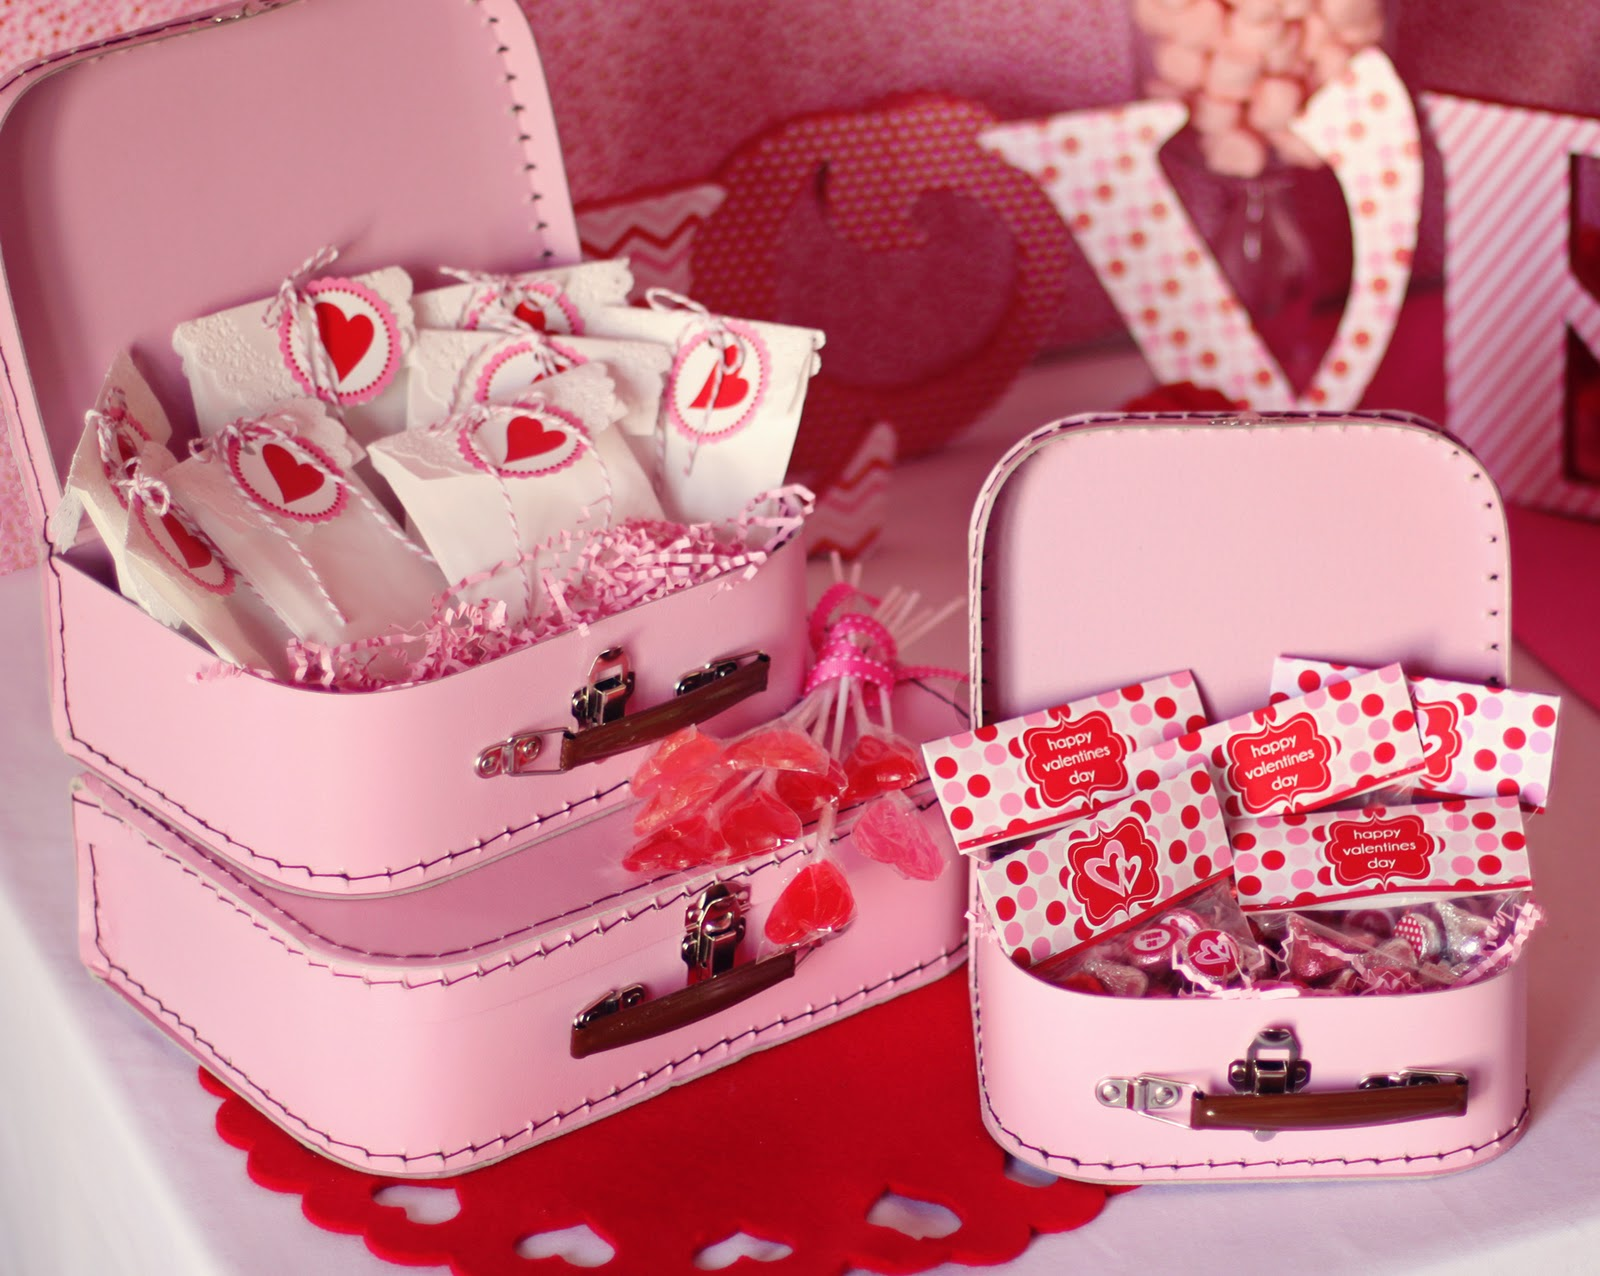 valentines day party ideas Easy valentine's day ideas get menu ideas, chocolate recipes all-desserts (and all-adults) party crafts, cards, quotes, and more shortcuts to a romantic valentine's day 10 easy ideas from valentine's day gift ideas to simple sweet treats for spicing up the holiday valentine's.